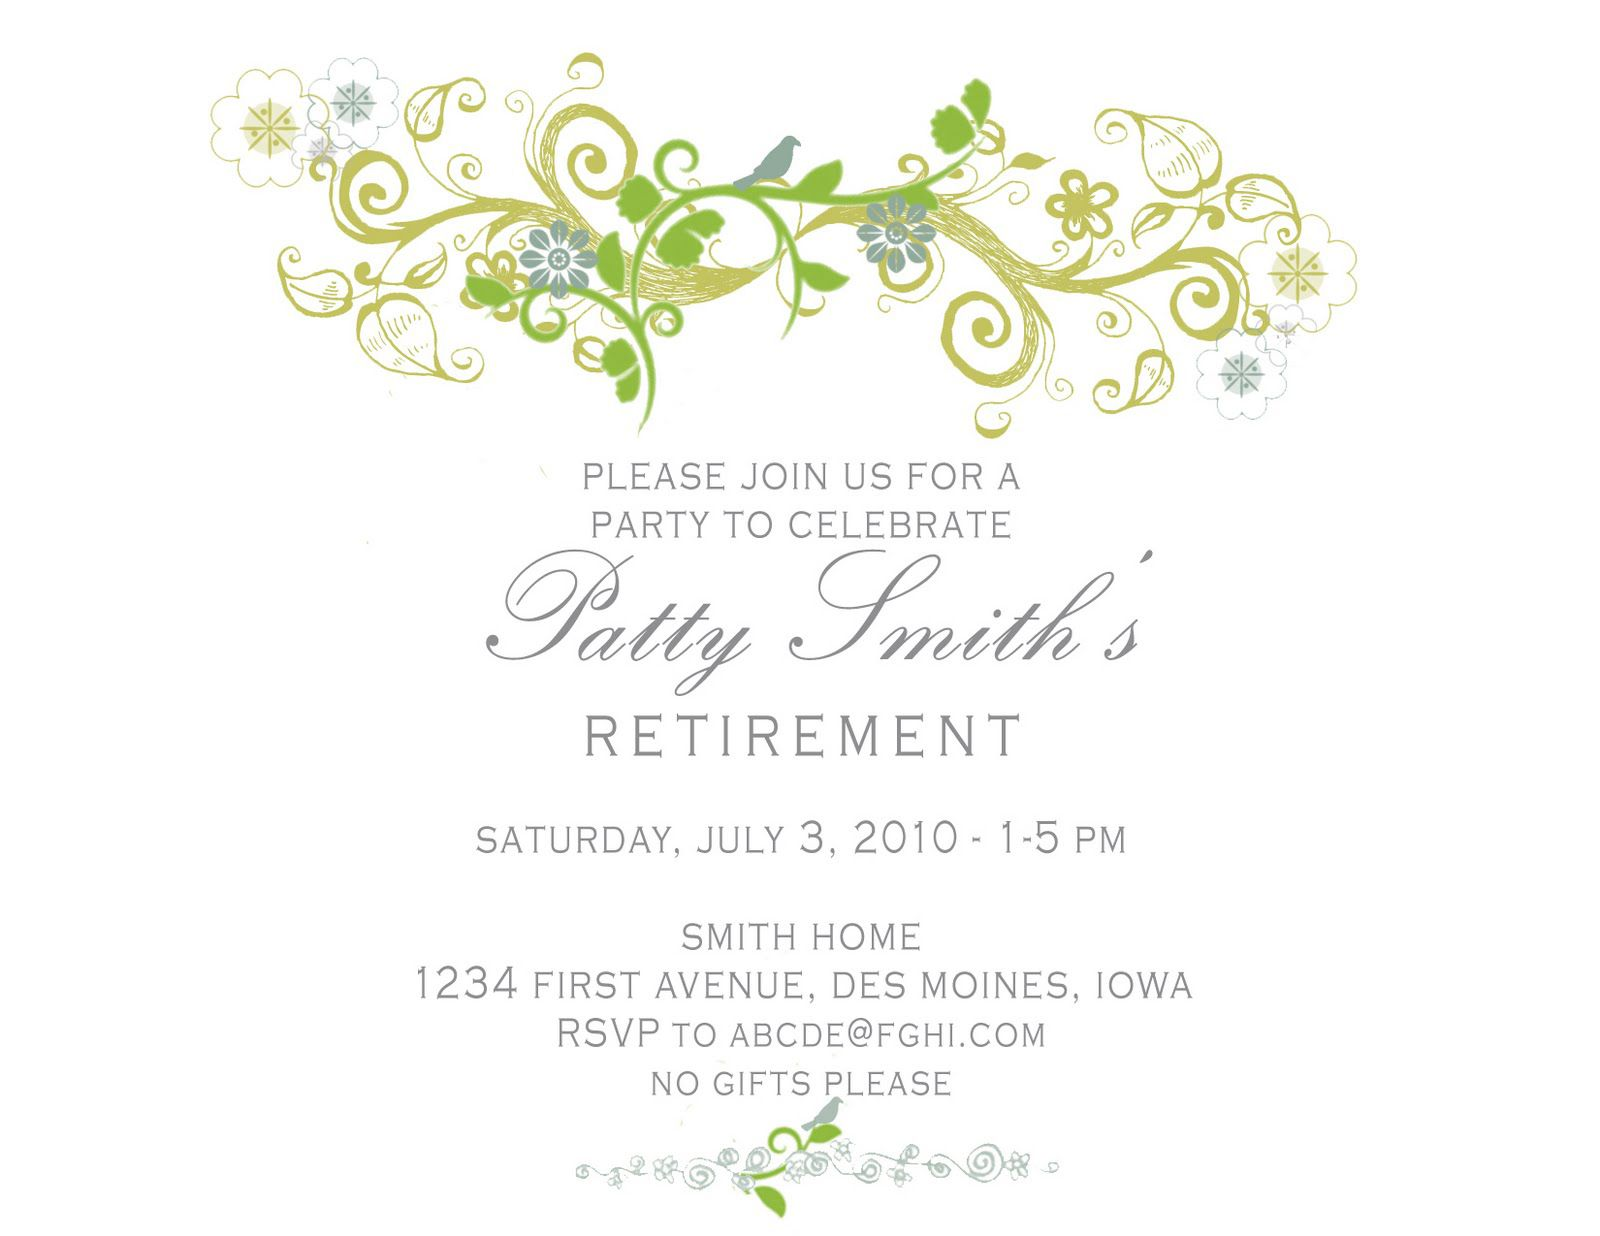 Lunch invitation templates address label templates invitation letter for birthday lunch images invitation sample f603a986af7219b4ced42c070b9d7c64 invitation letter for birthday lunch stopboris Images